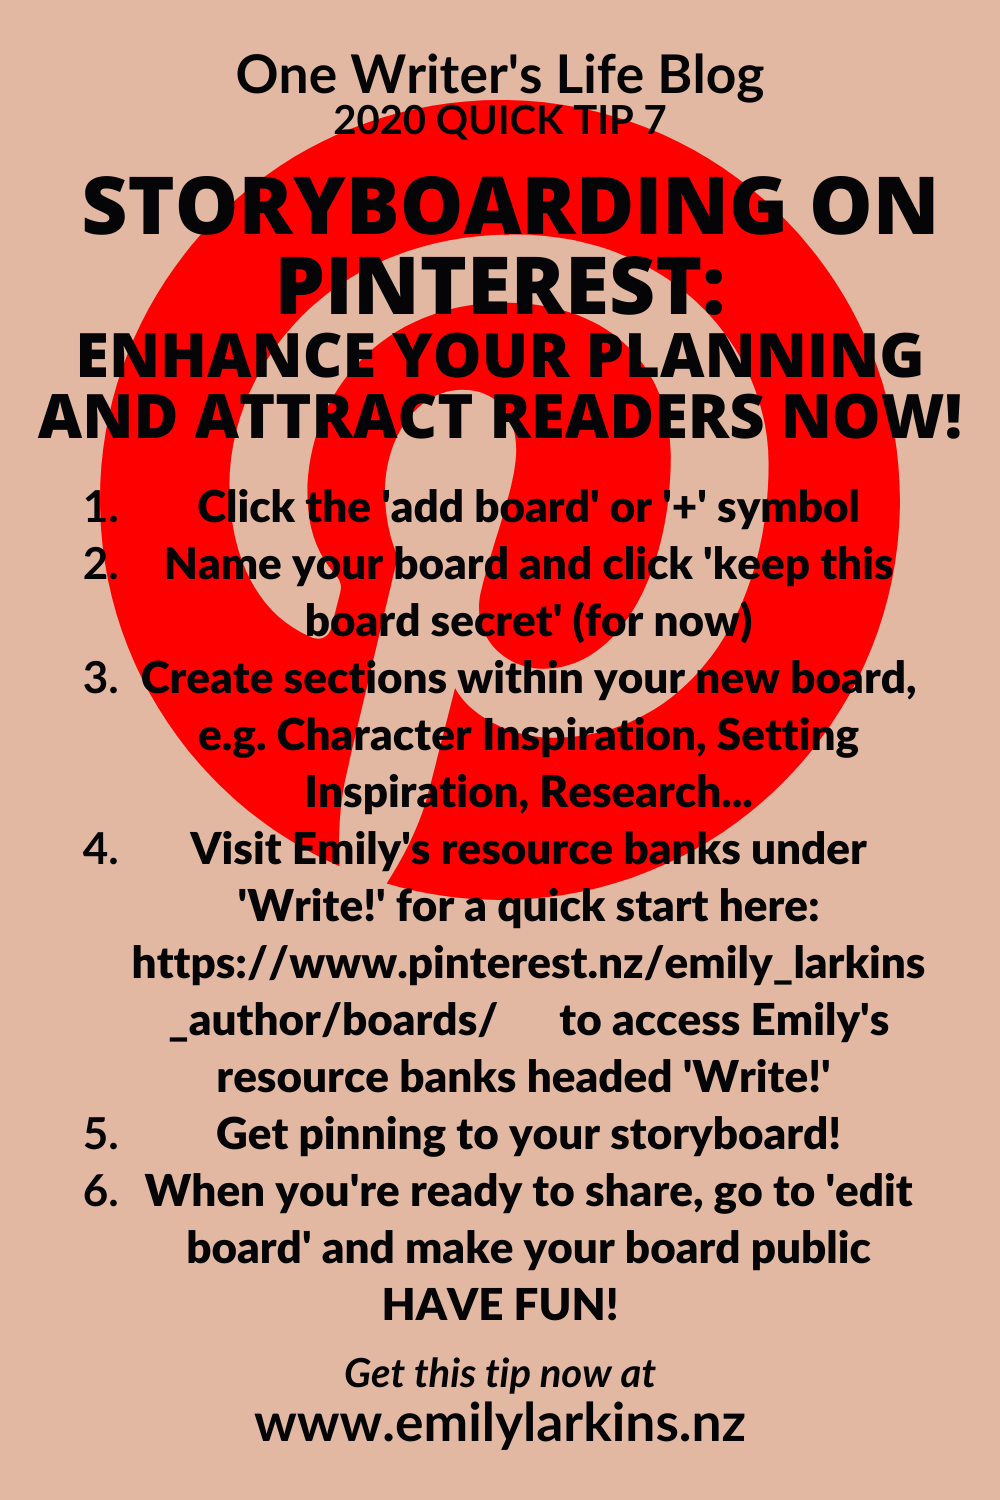 Picture Pinterest Graphic, a 'how to' quick tip sheet on storyboarding